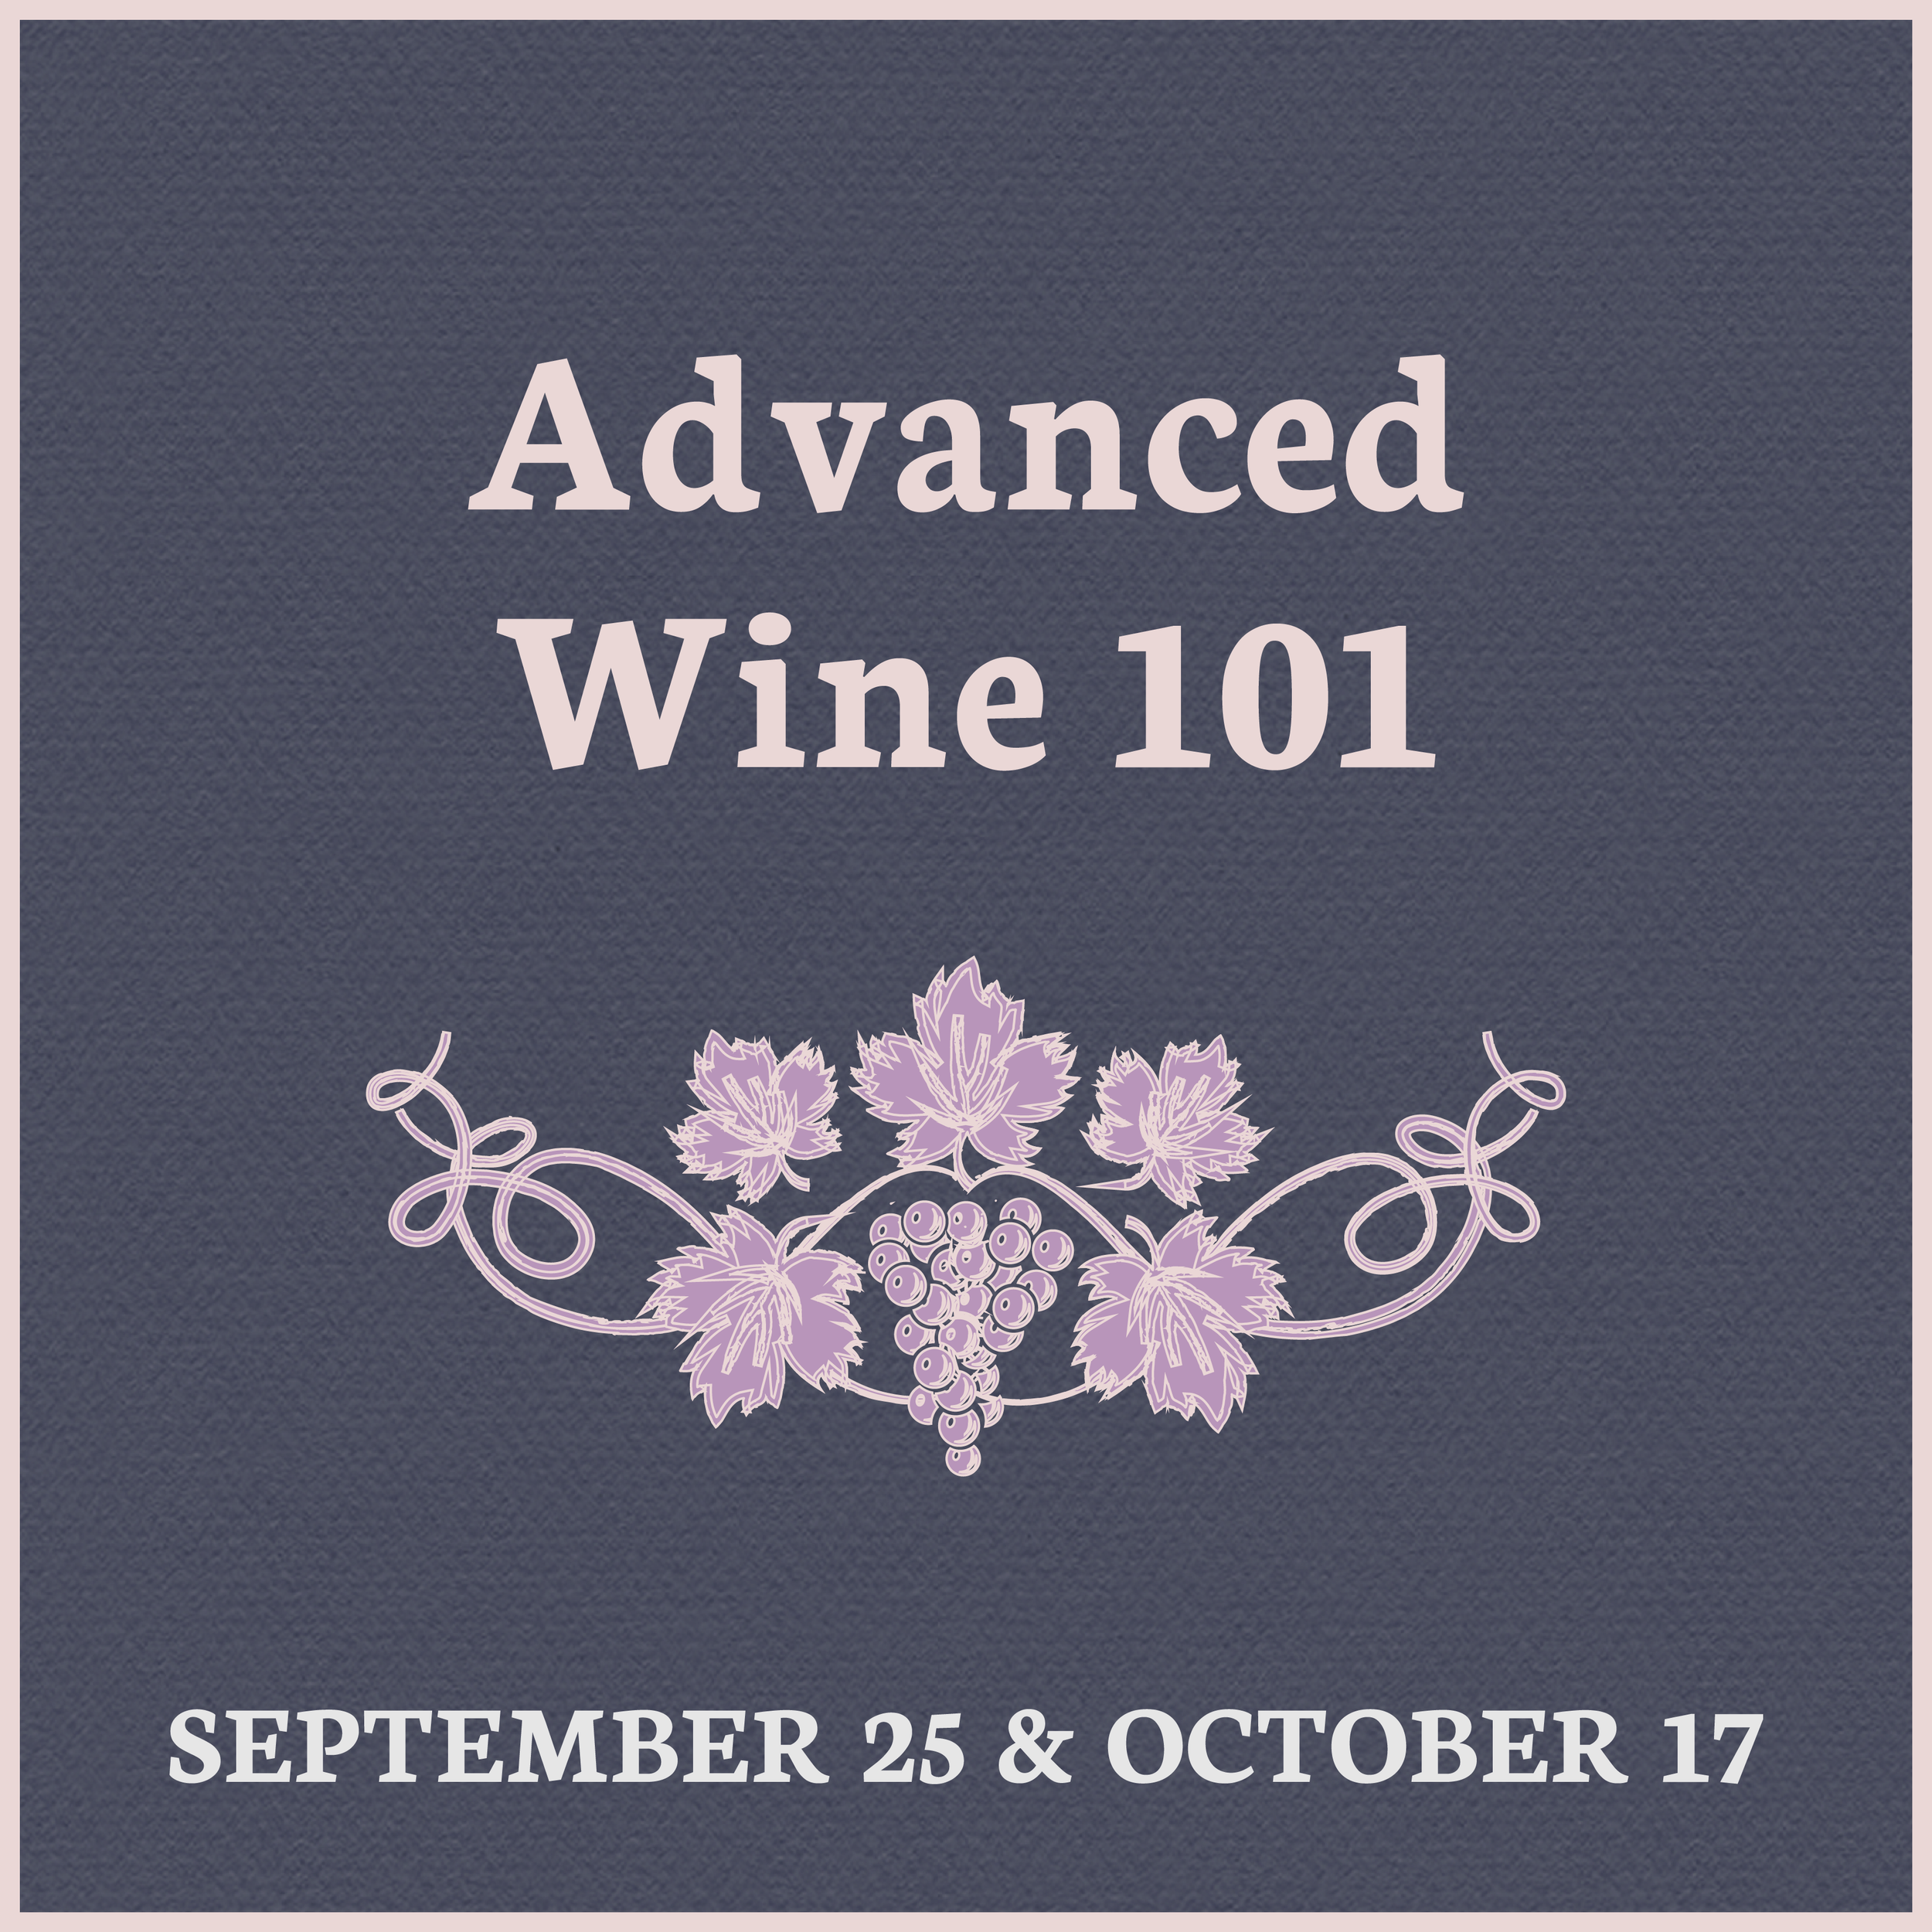 Advanced Wine 101 Downtown Los Angeles September 25, 2019 7:00 PM - 9:00 PM